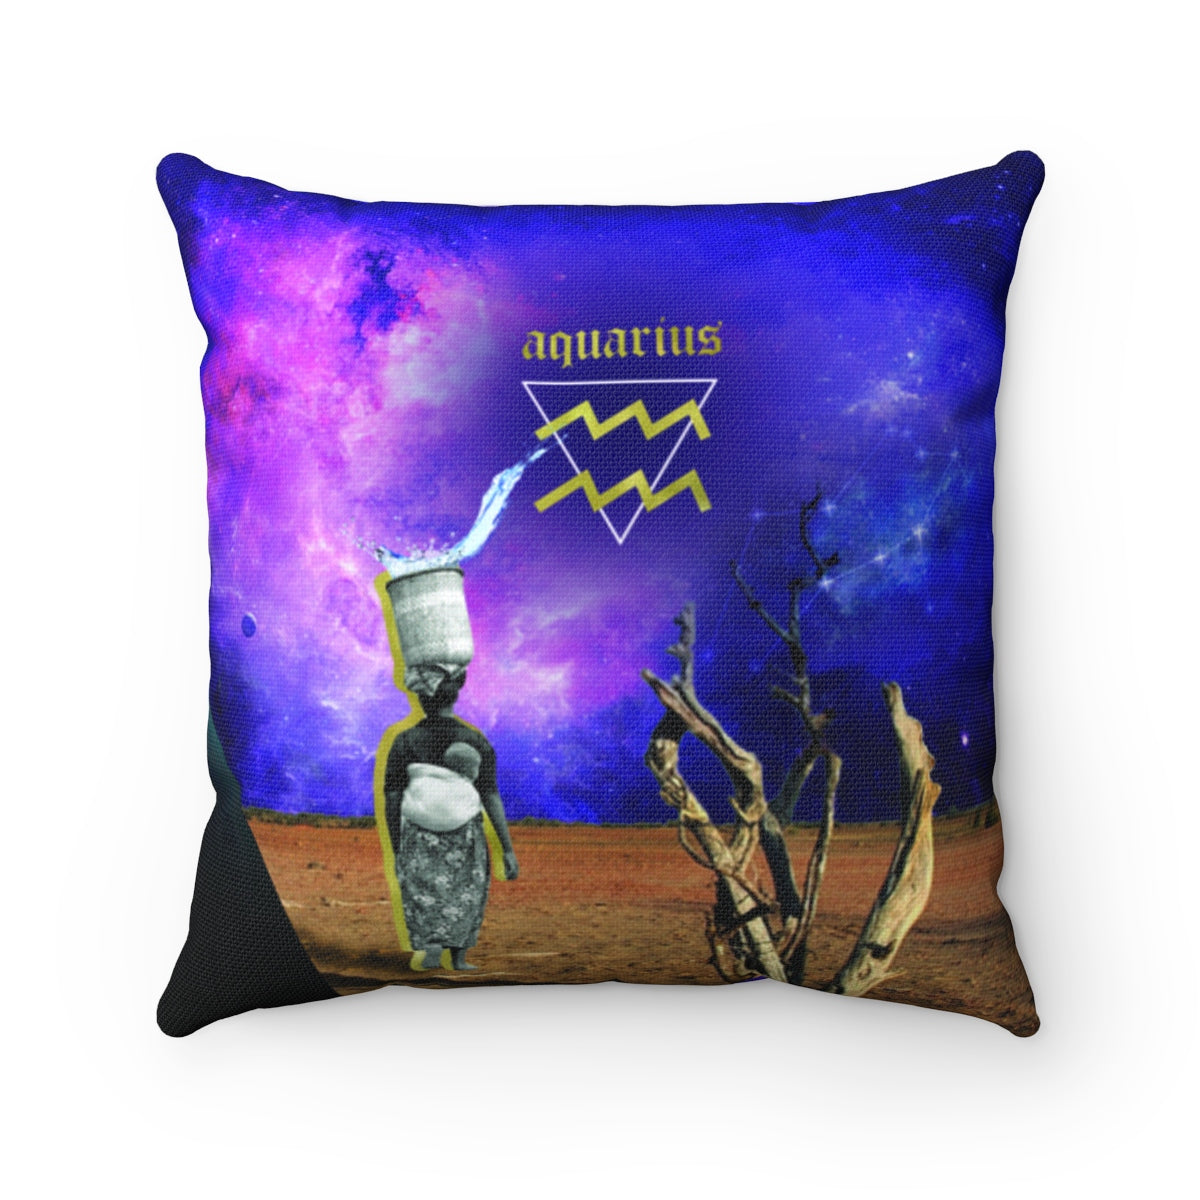 Aquarius Pillow - #ChildishZodiac